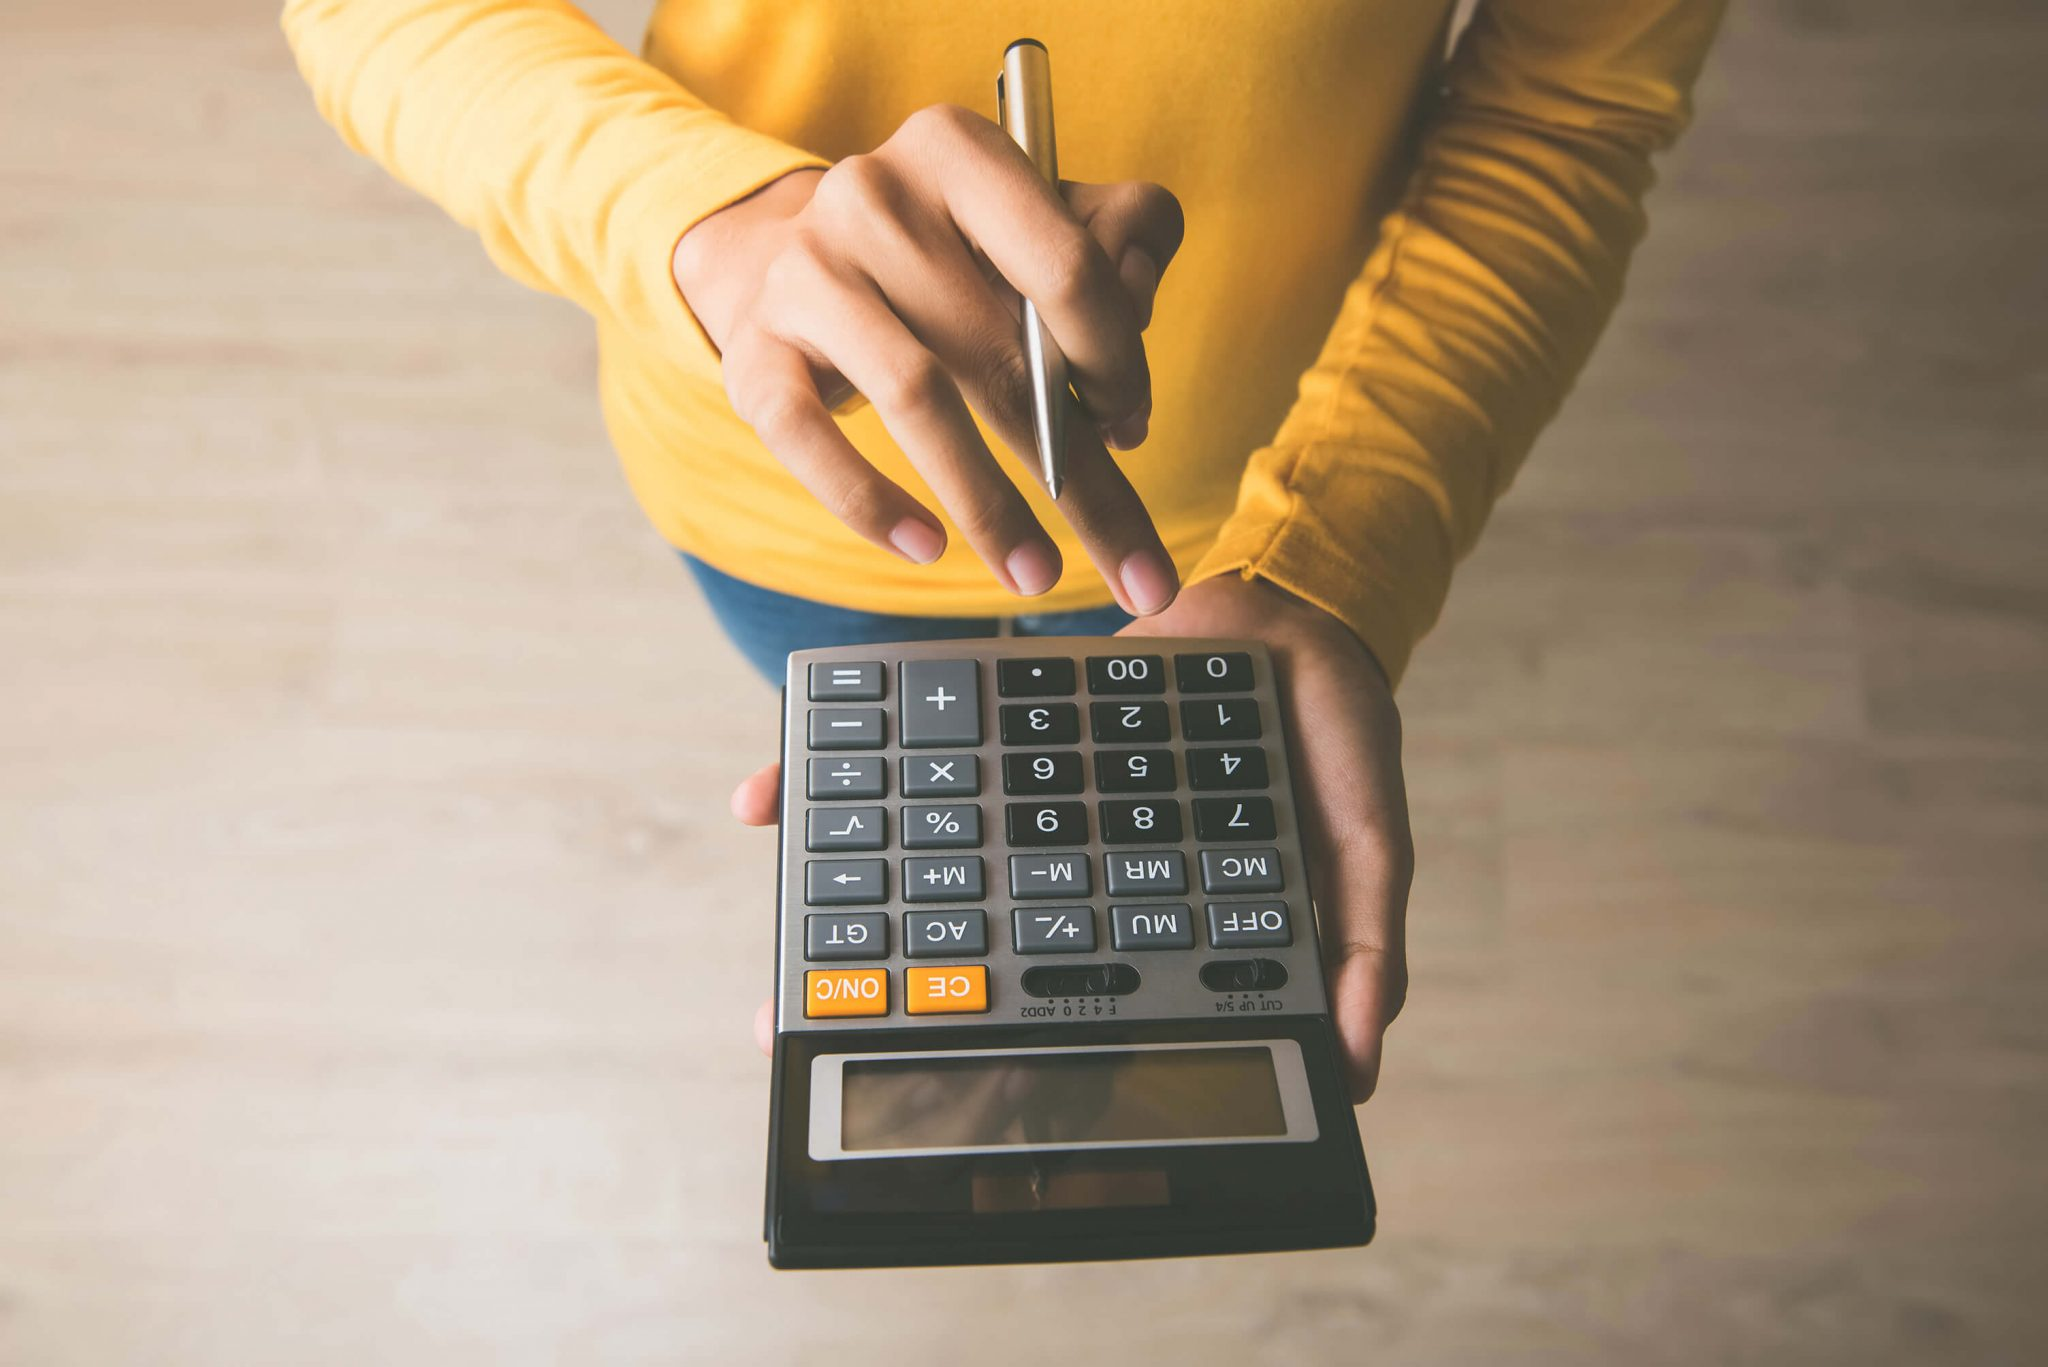 DPS tax accountant using a calculator